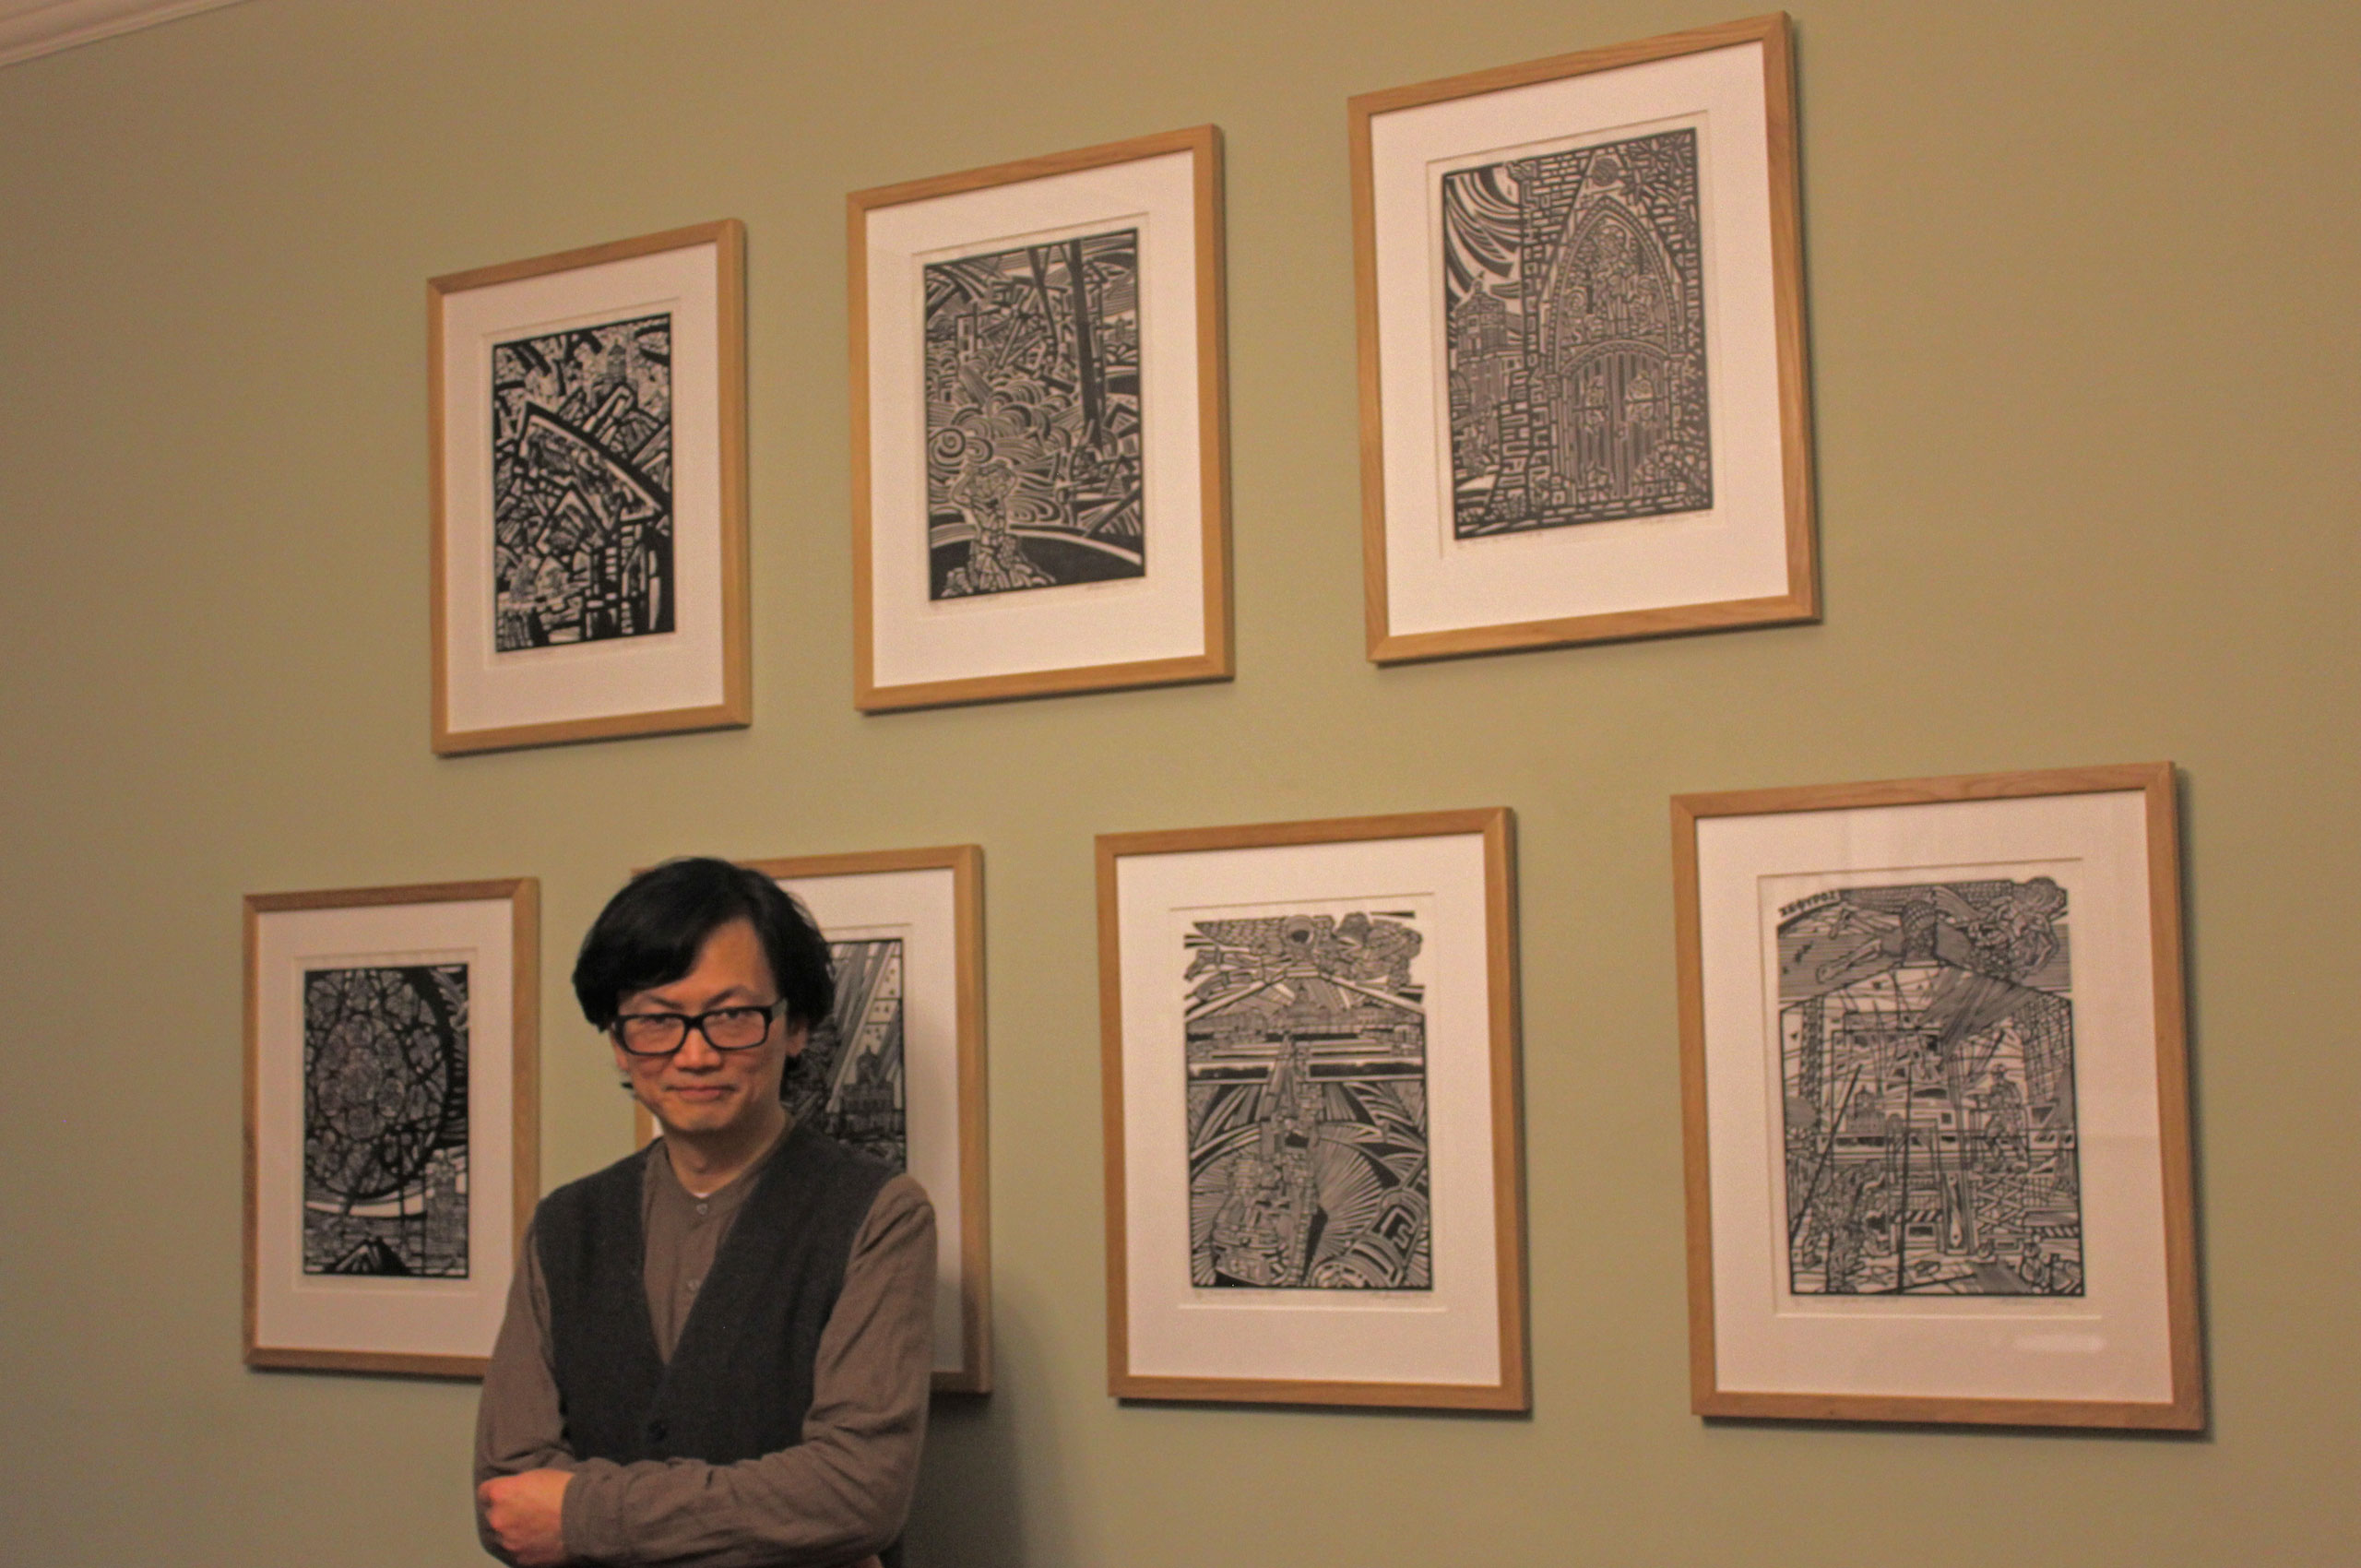 Artist in Residence Weimin He at the launch of his book, Tower of the Winds, in the Kawasaki Room at Green Templeton College on 31 January 2019